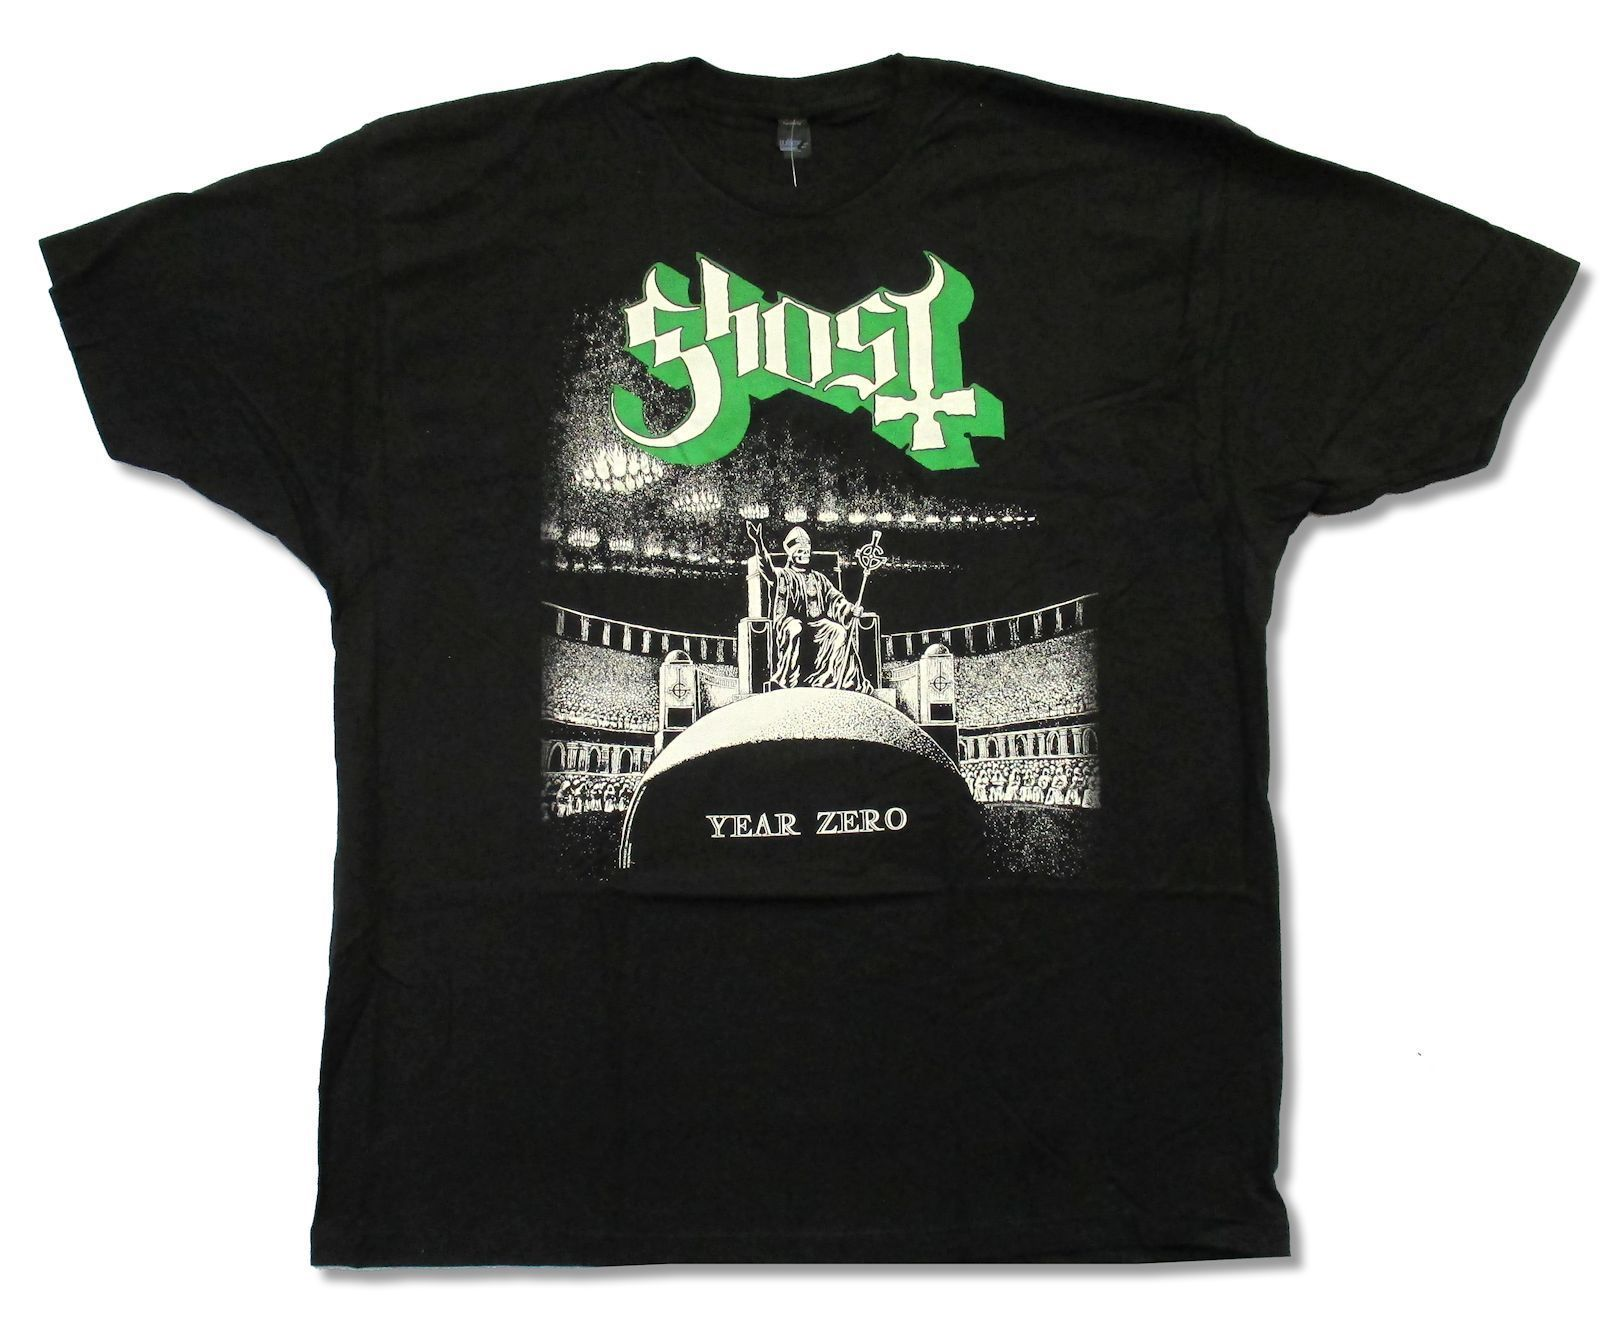 GHOST B C HAZE OVER N A TOUR 2013 BLACK T SHIRT NEW OFFICIAL ADULT YEAR ZERO Top Tee Plus Size Harajuku T Shirt in T Shirts from Men 39 s Clothing